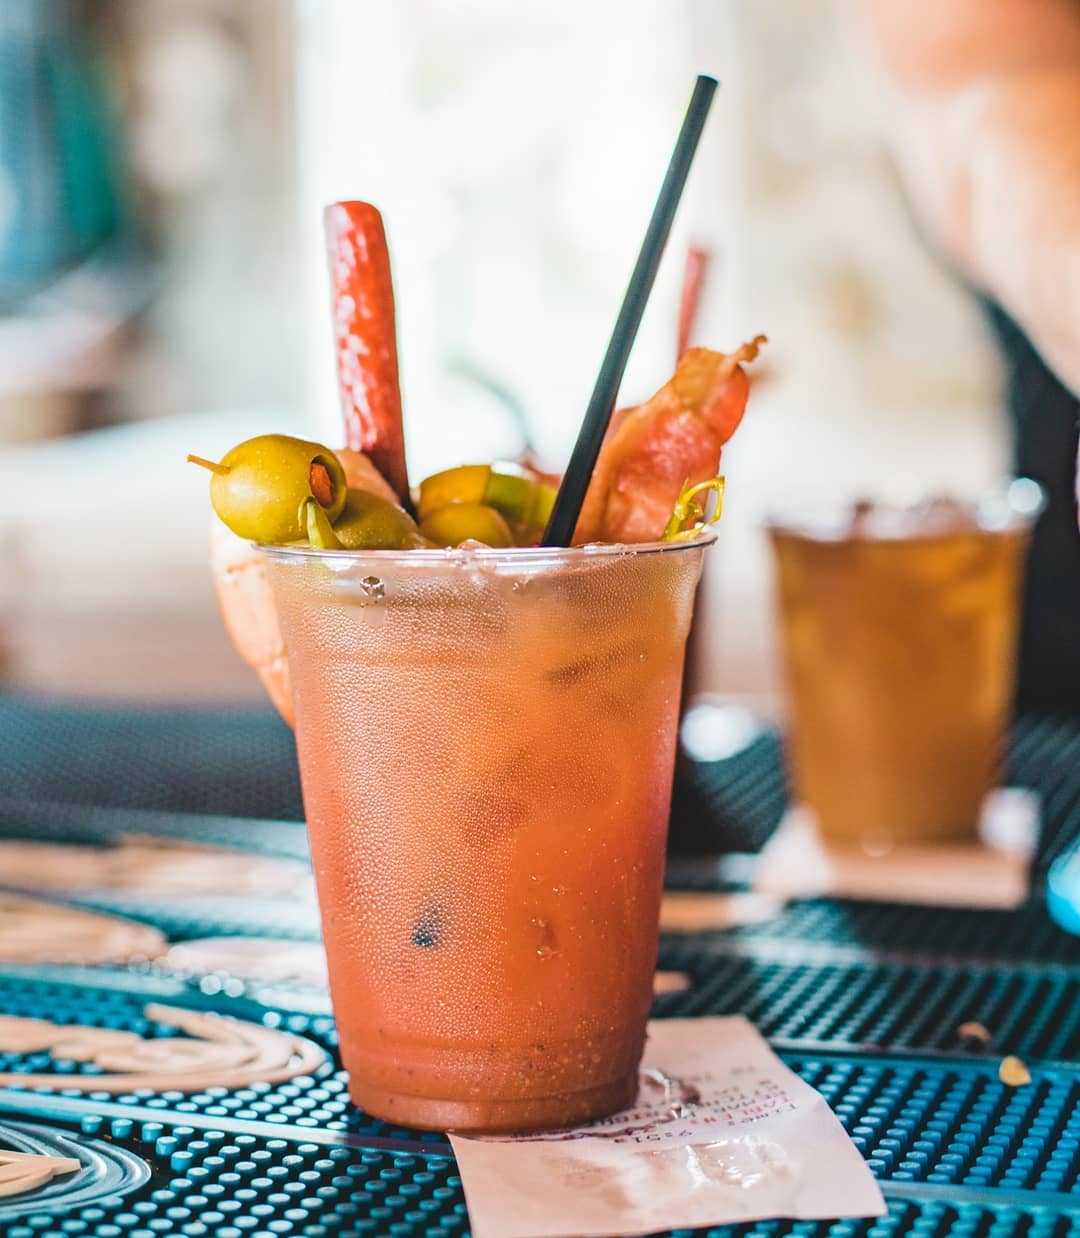 The signature trailer trash Bloody Mary has everything but the kitchen sink